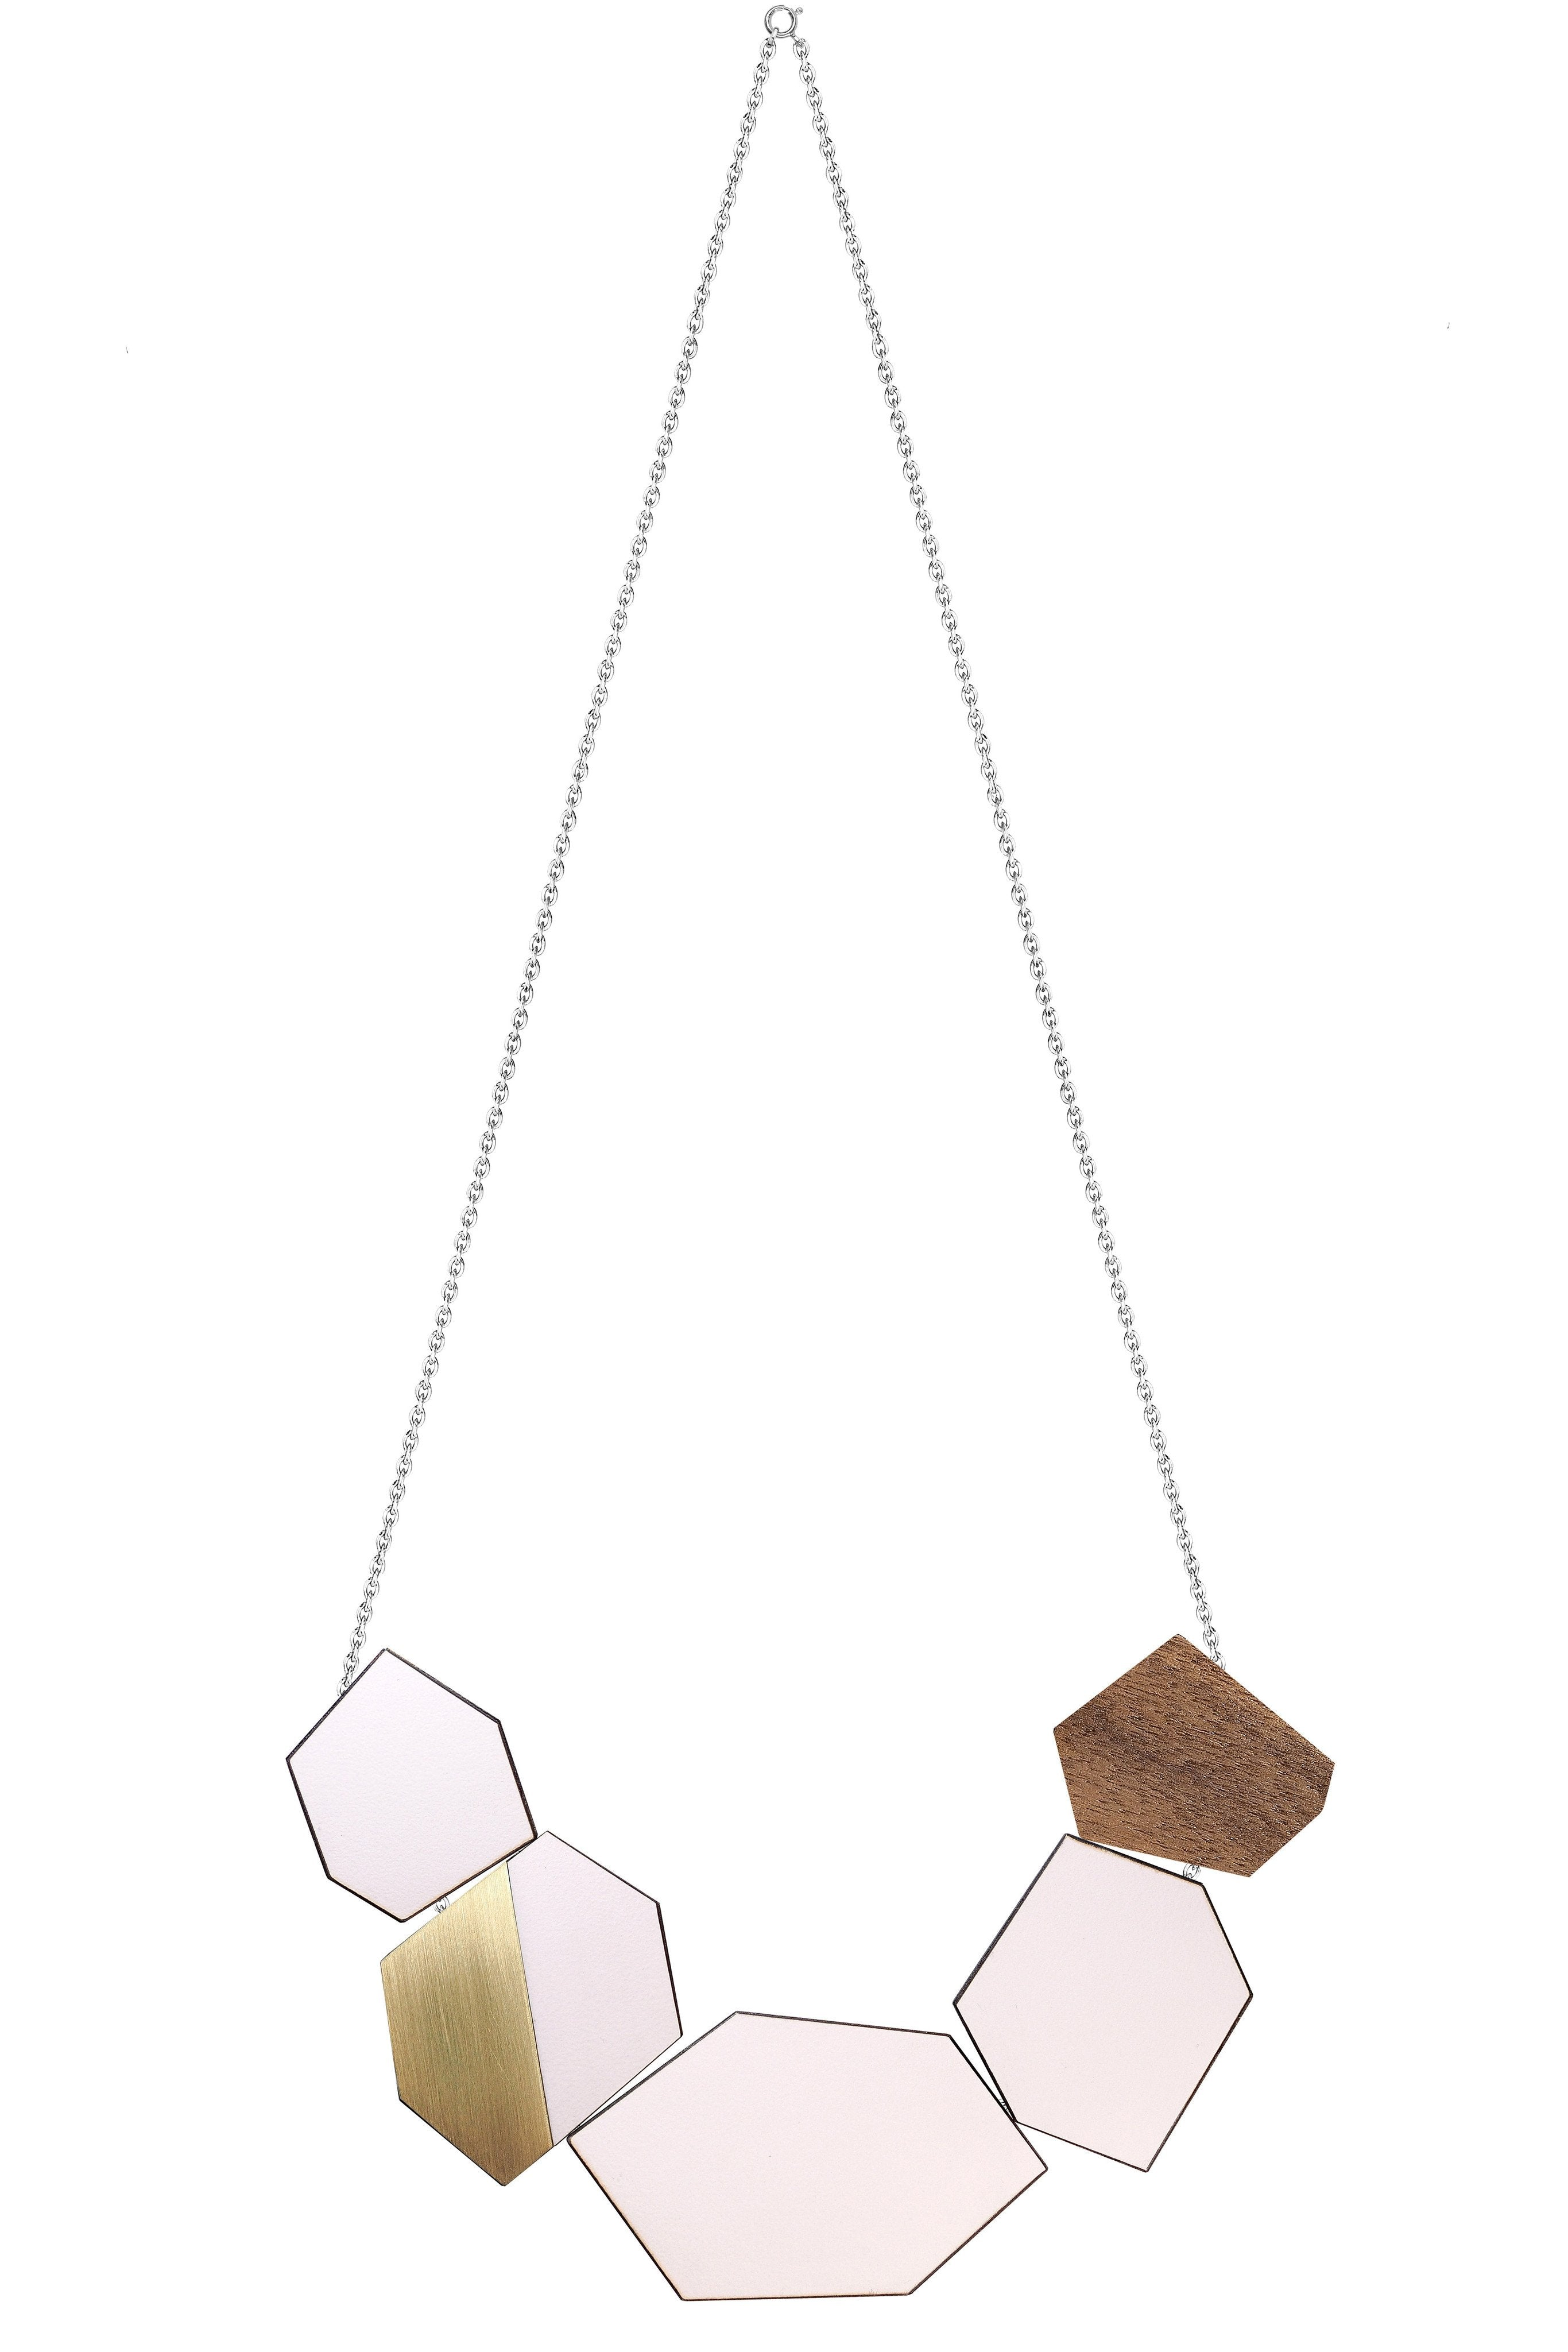 The Ella - Just Rose Reversible Necklace by form.london on OOSTOR.com